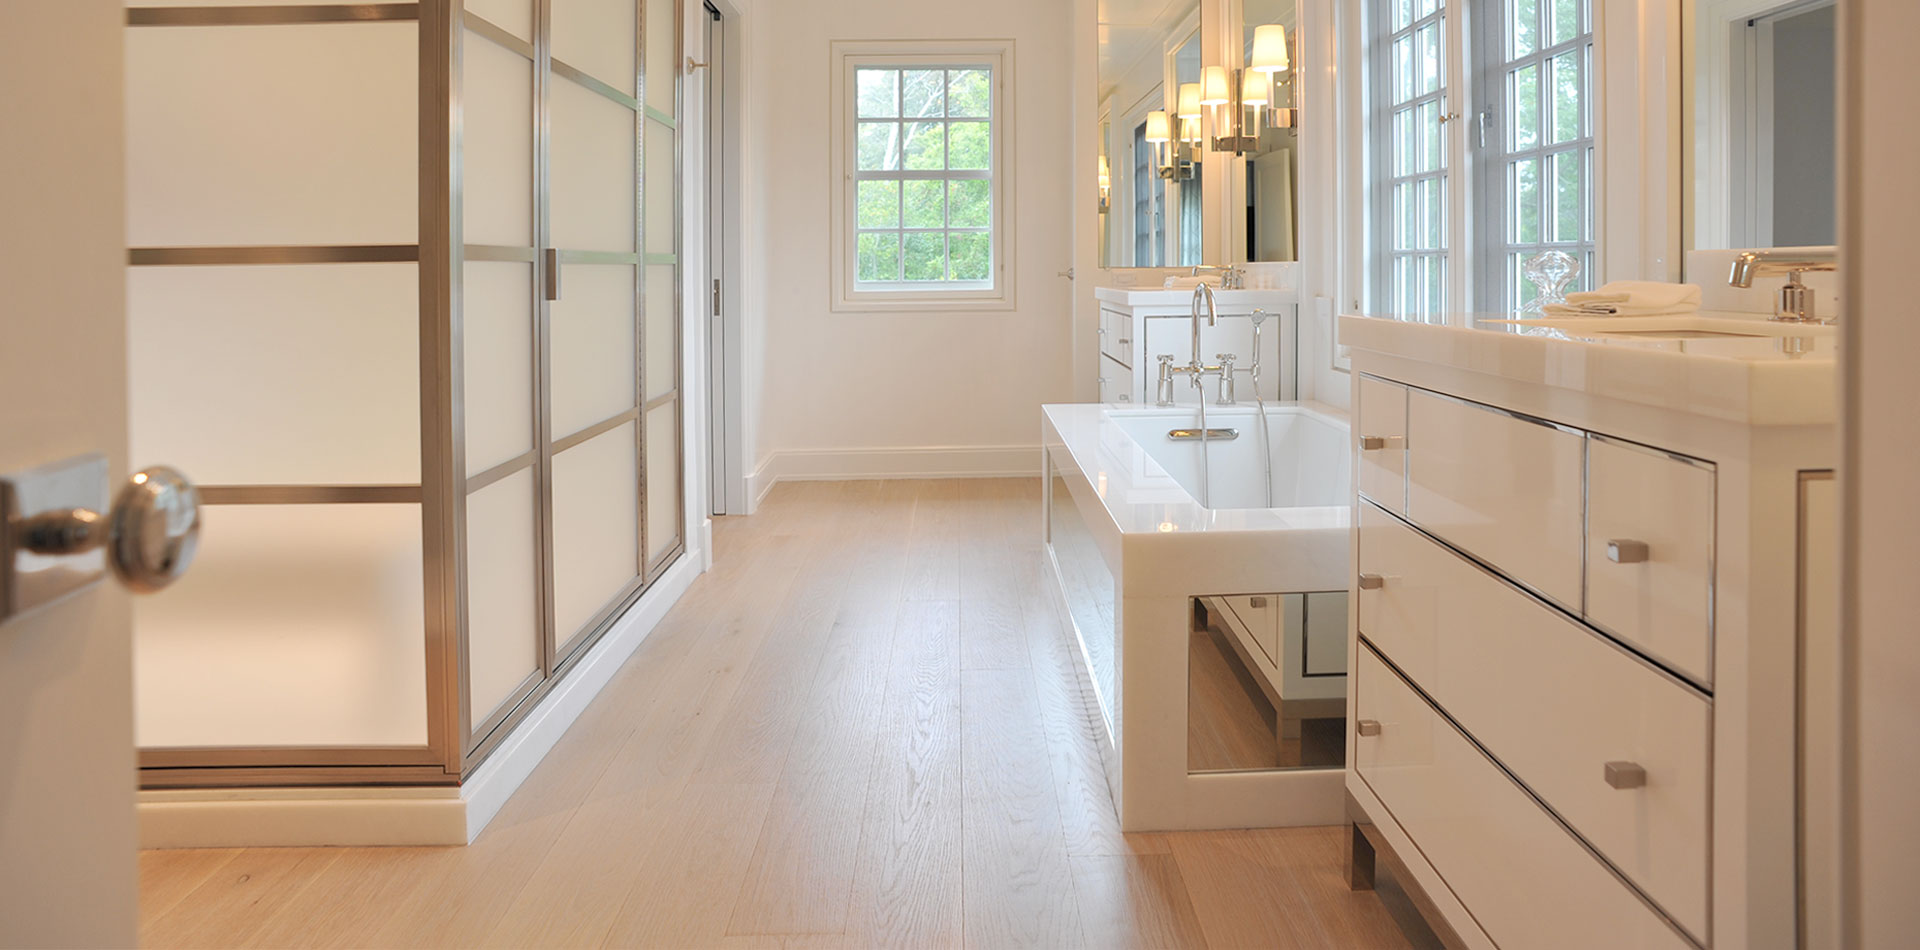 Custom Built Cabinetry From Our Hands To Your Home